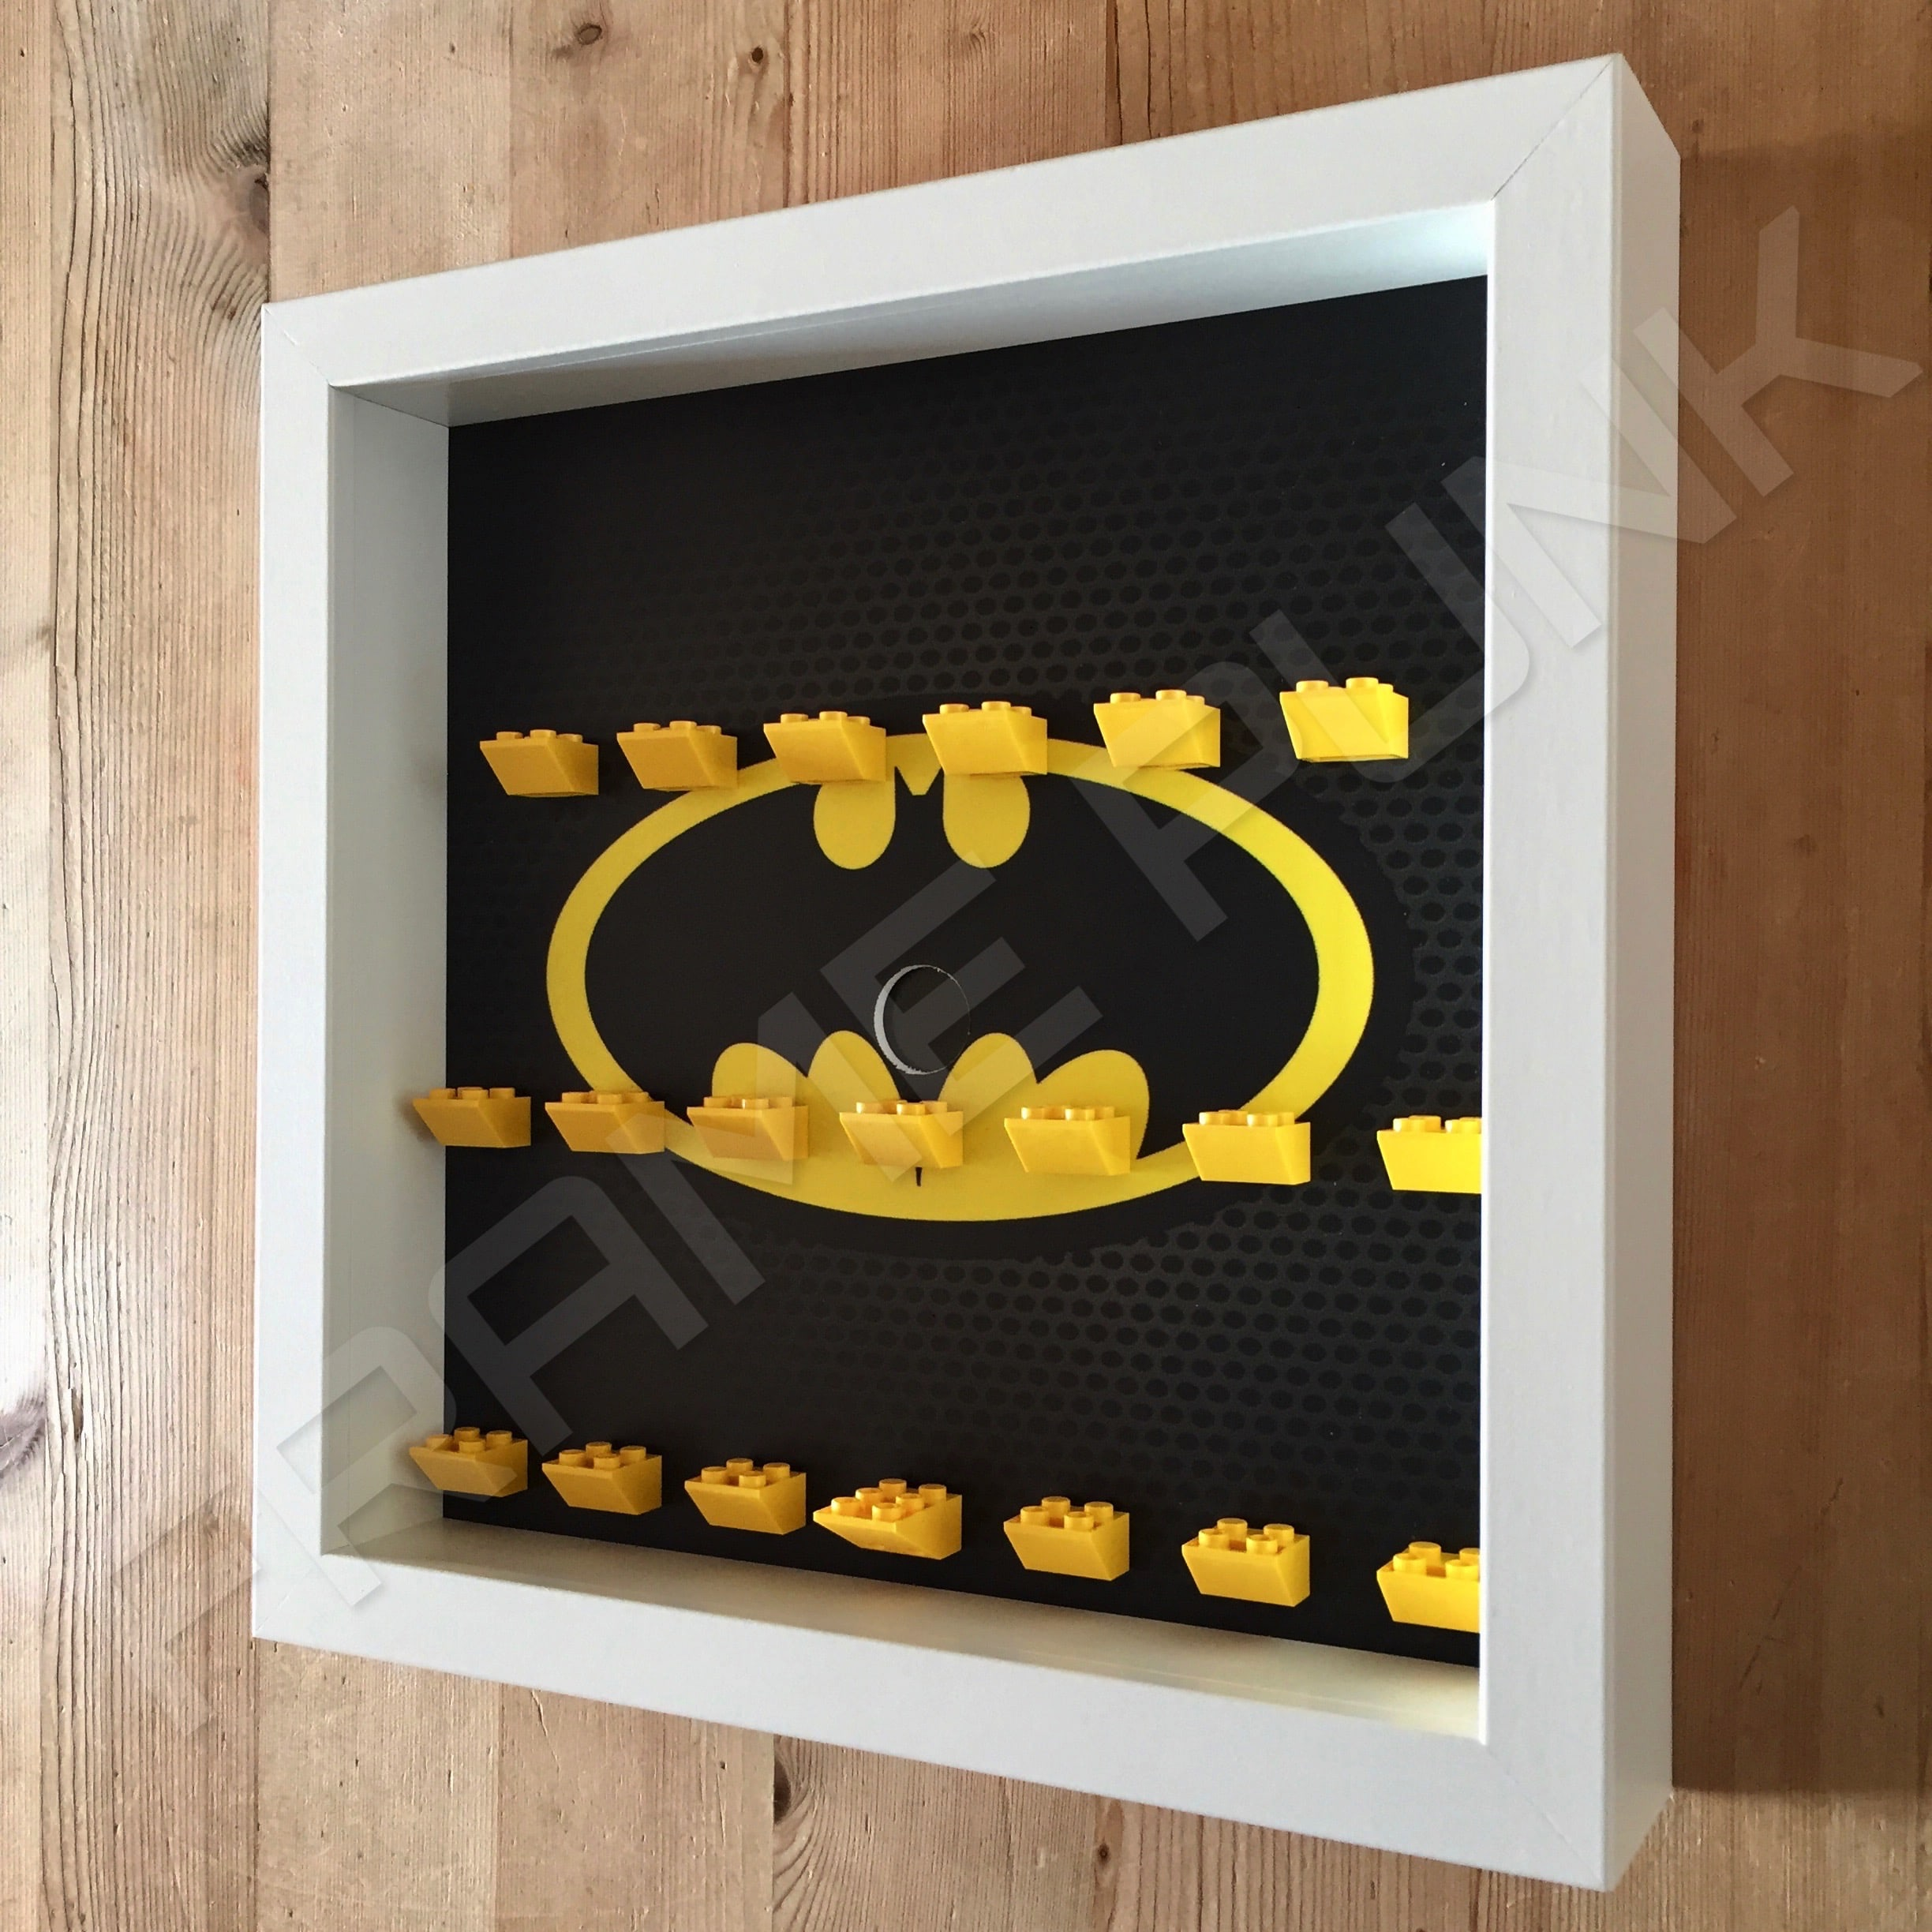 classic lego batman movie minifigures series display frame white side view - Display Frame